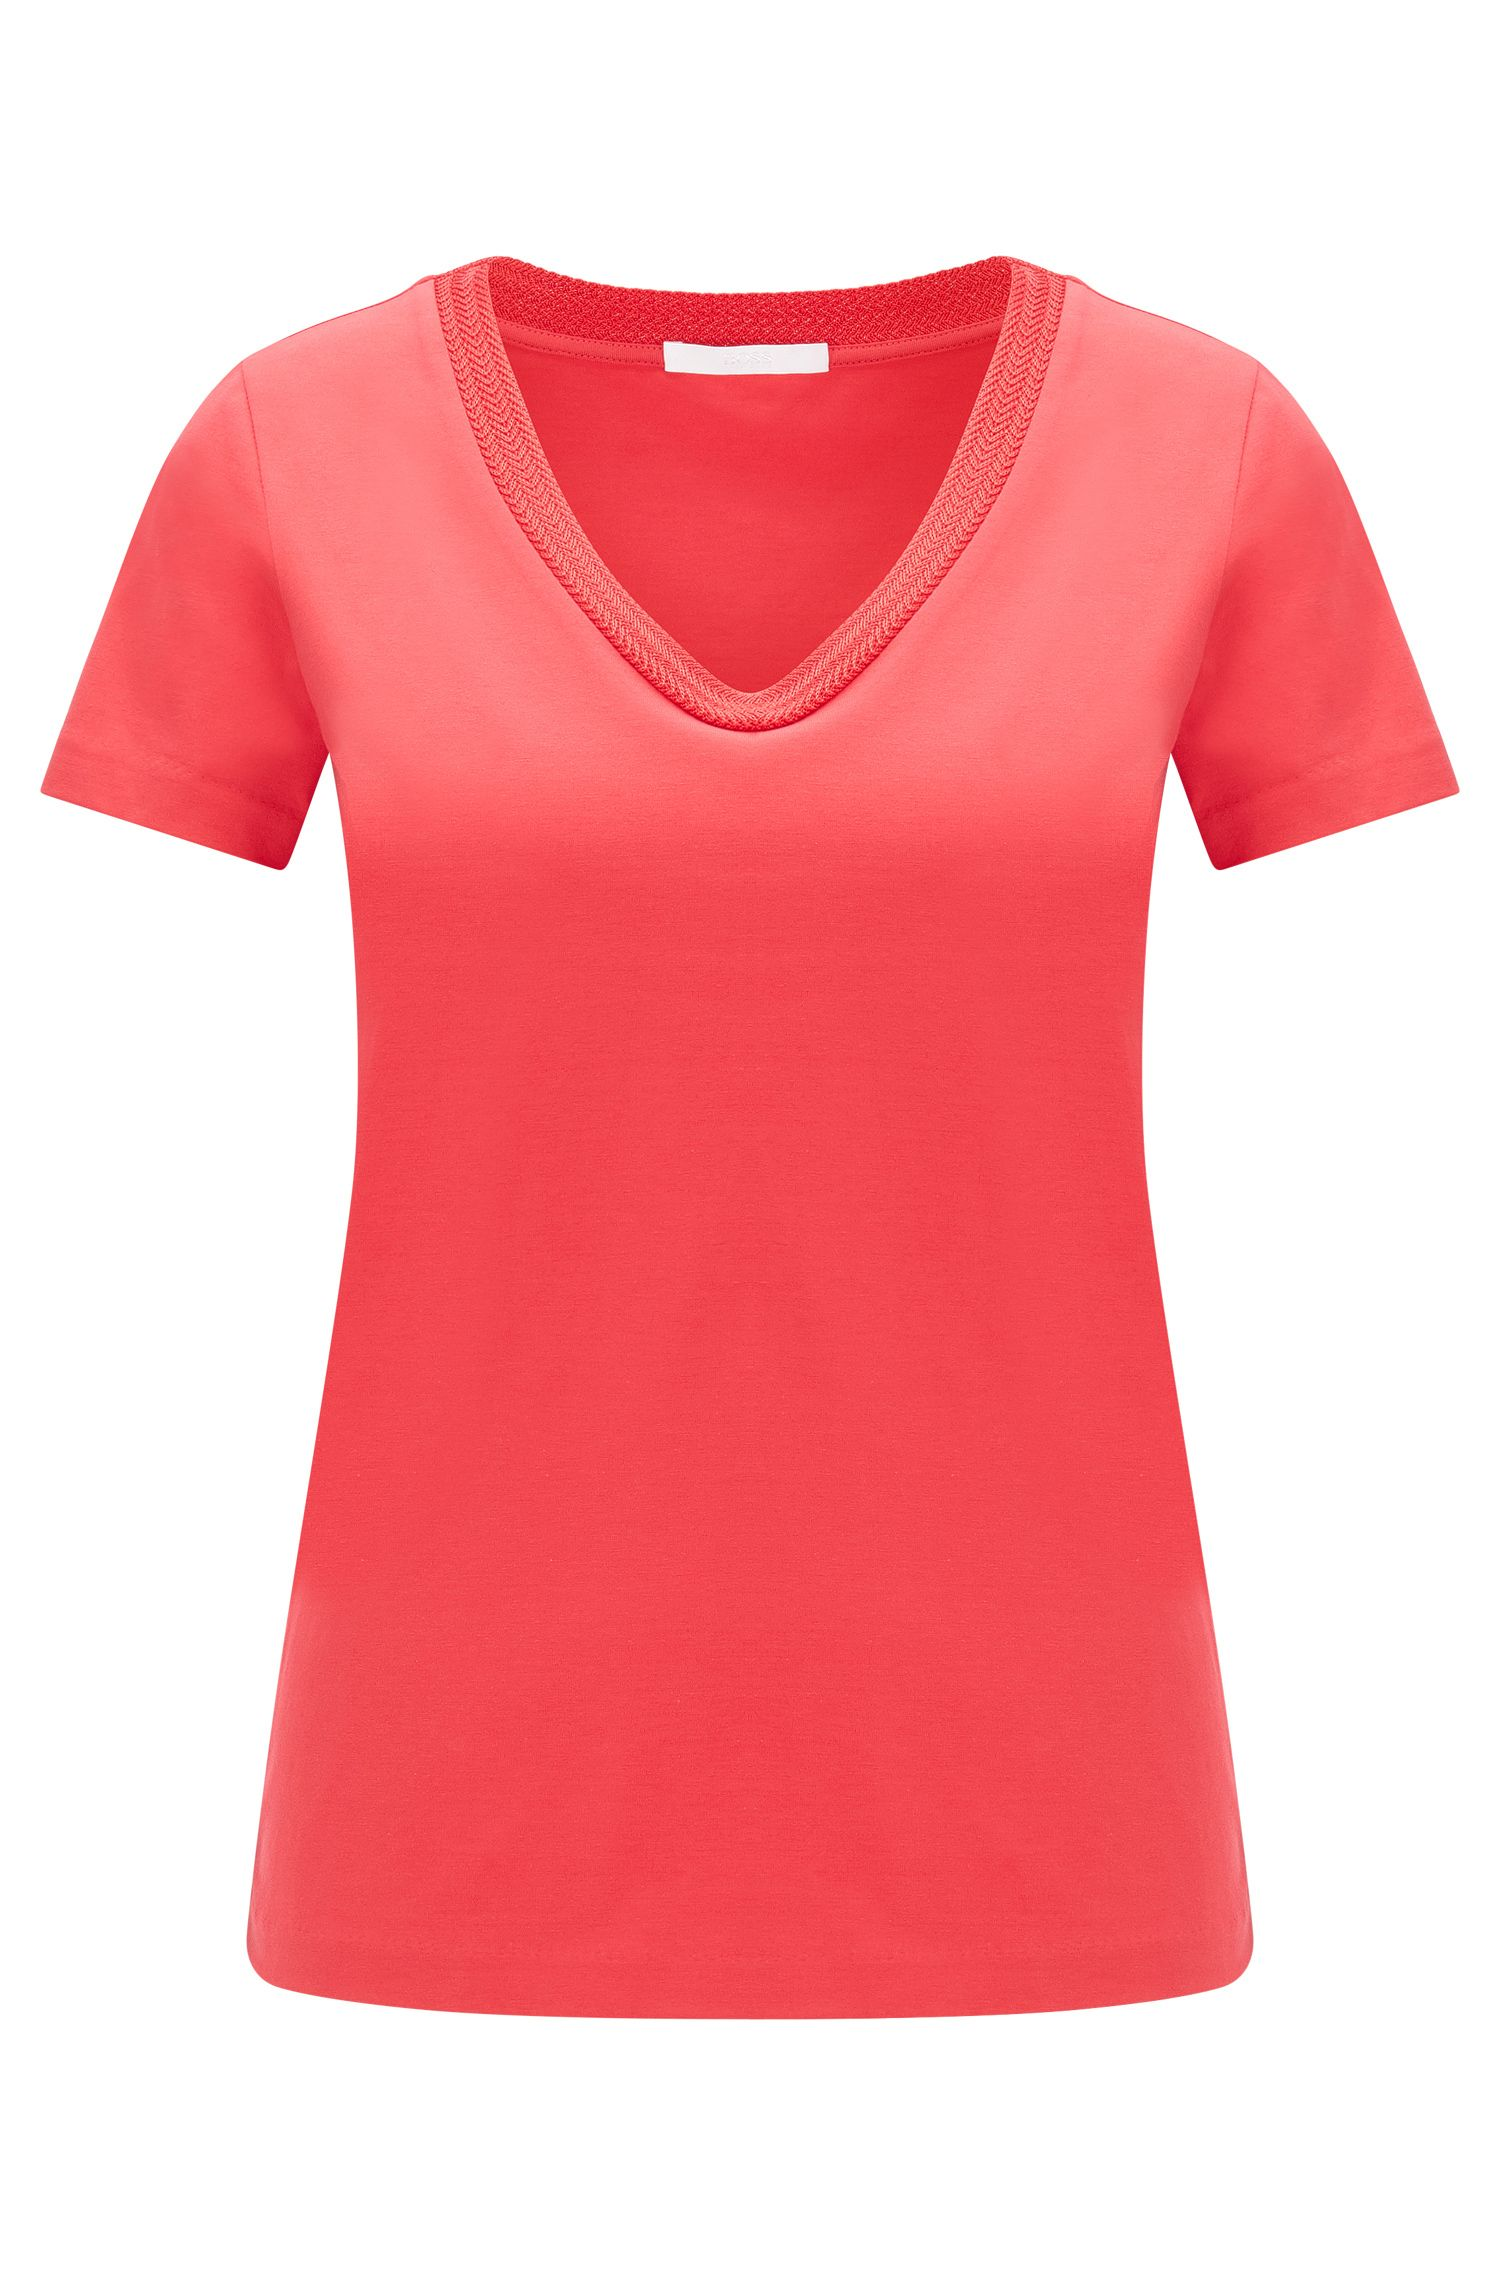 Fitted t-shirt in stretch cotton: 'Estana'